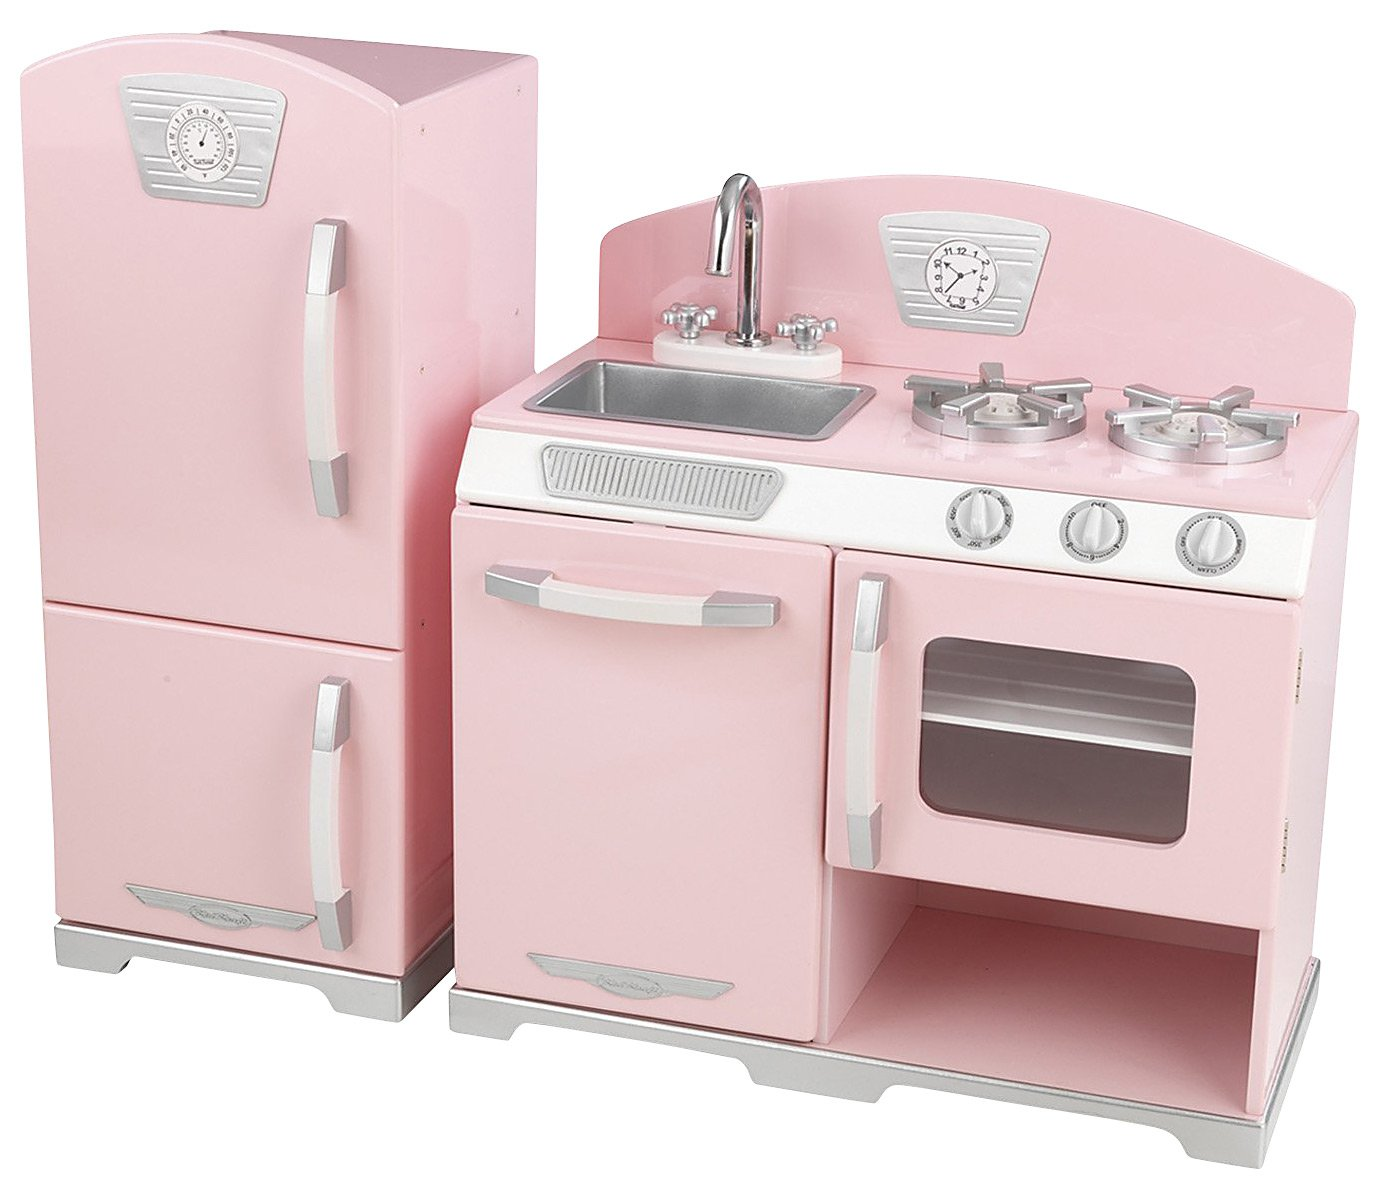 Kidkraft pink retro kitchen and refrigerator photo - 2